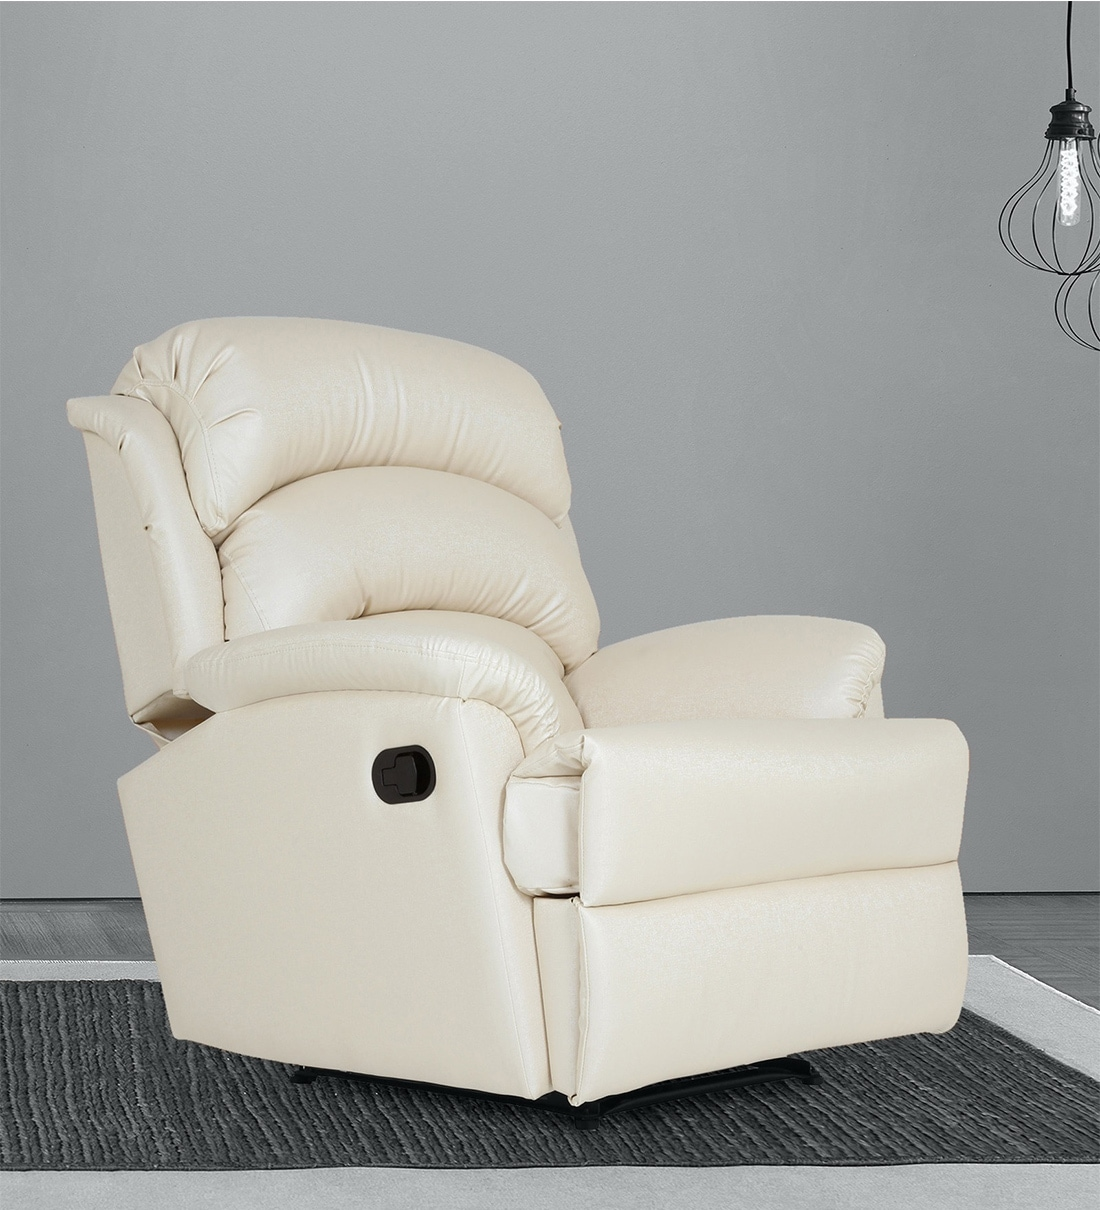 Https Www Pepperfry Com Alexandria One Seater Recliner In Ivory Colour By Casacraft 1366743 Html